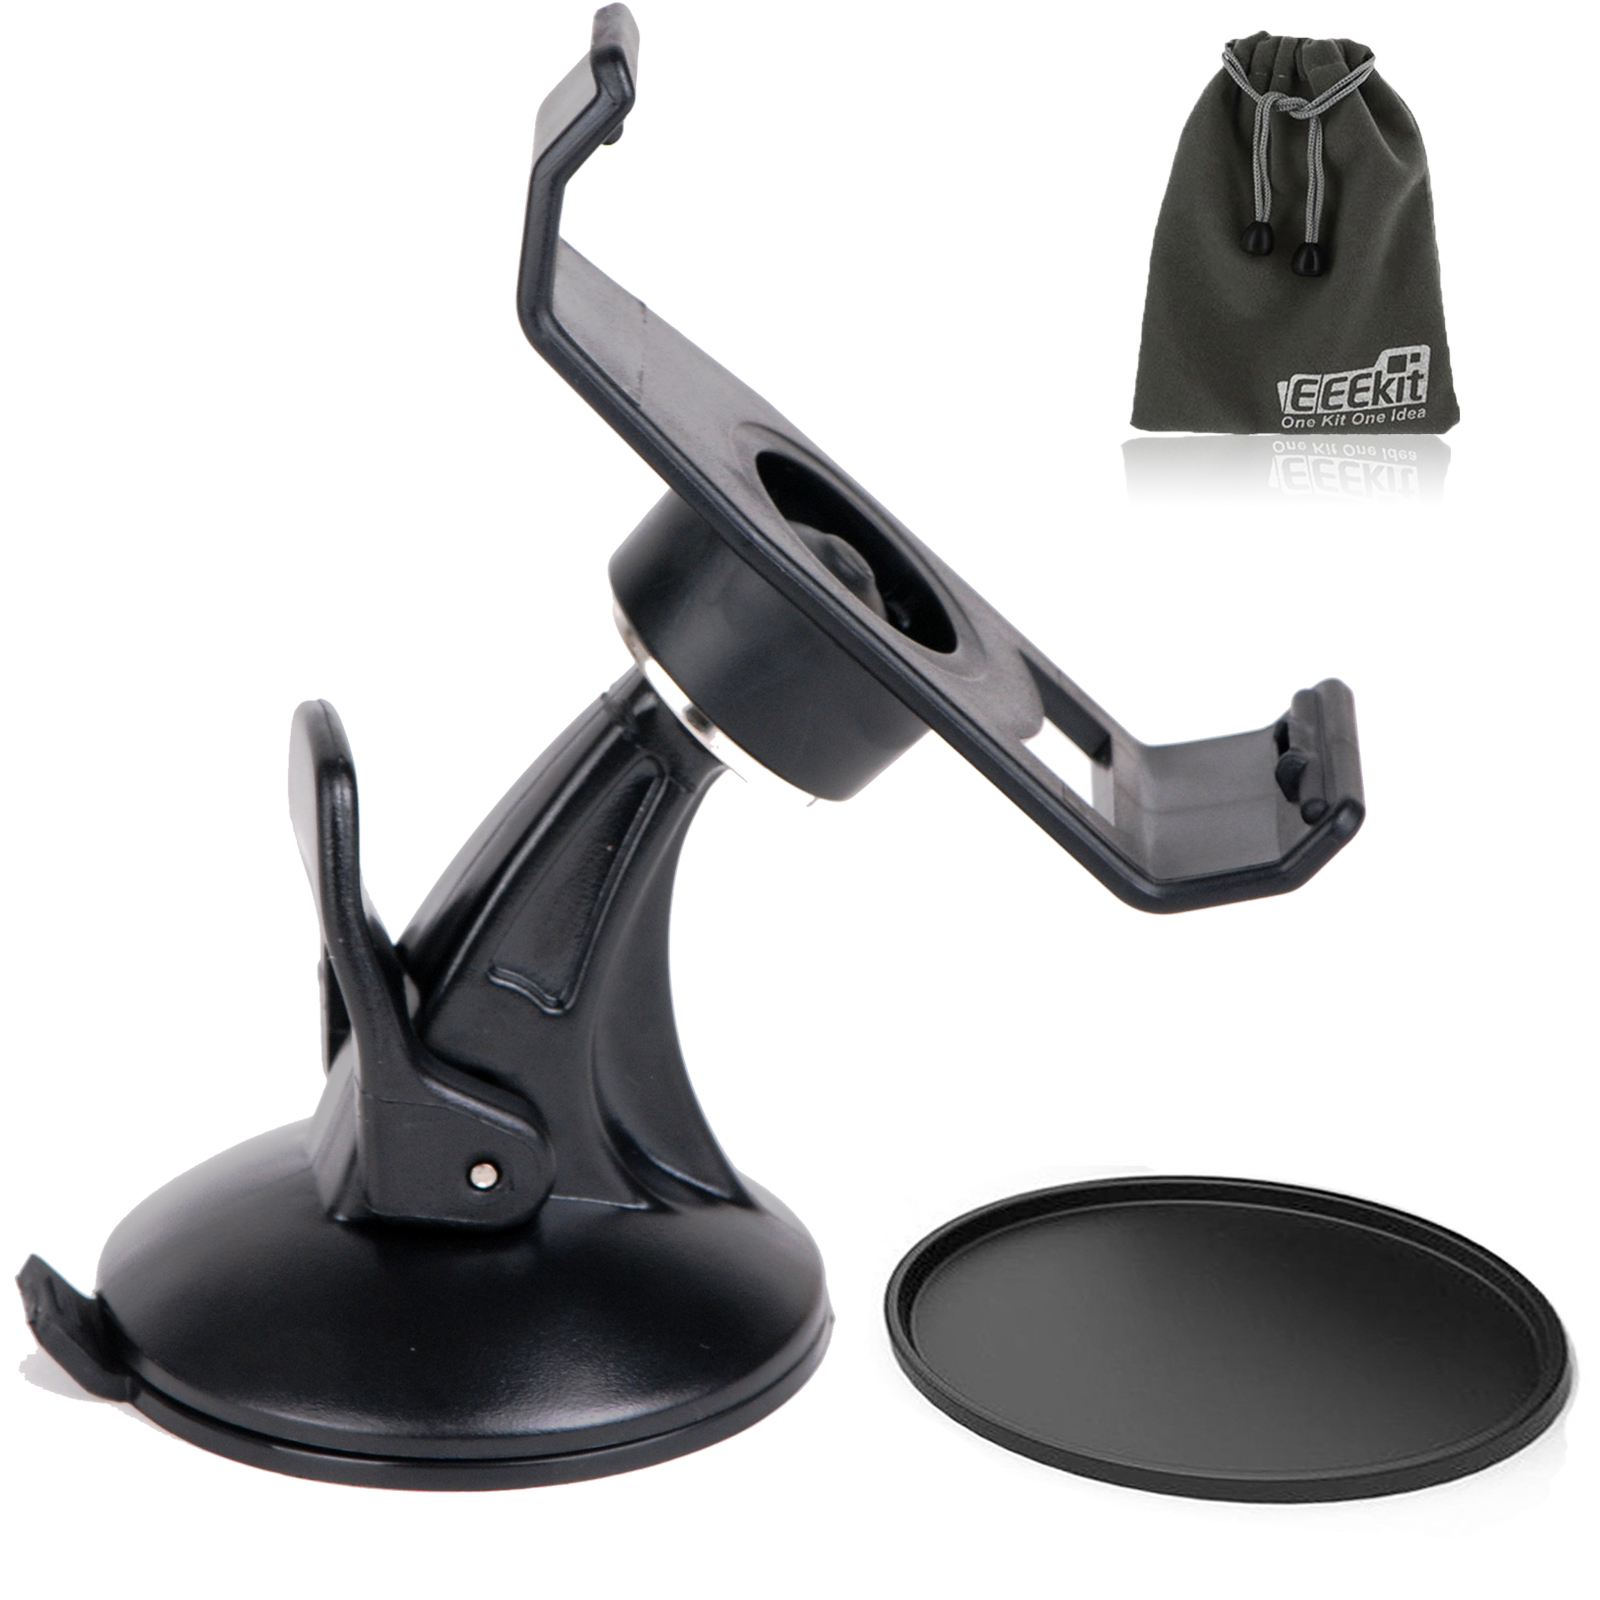 Car Mount Holder+Suction Cup Mount for Garmin Nuvi 200/205/250/255/260W 265T 265WT 270 275/465T GPS, EEEKit 2 in 1 Kit